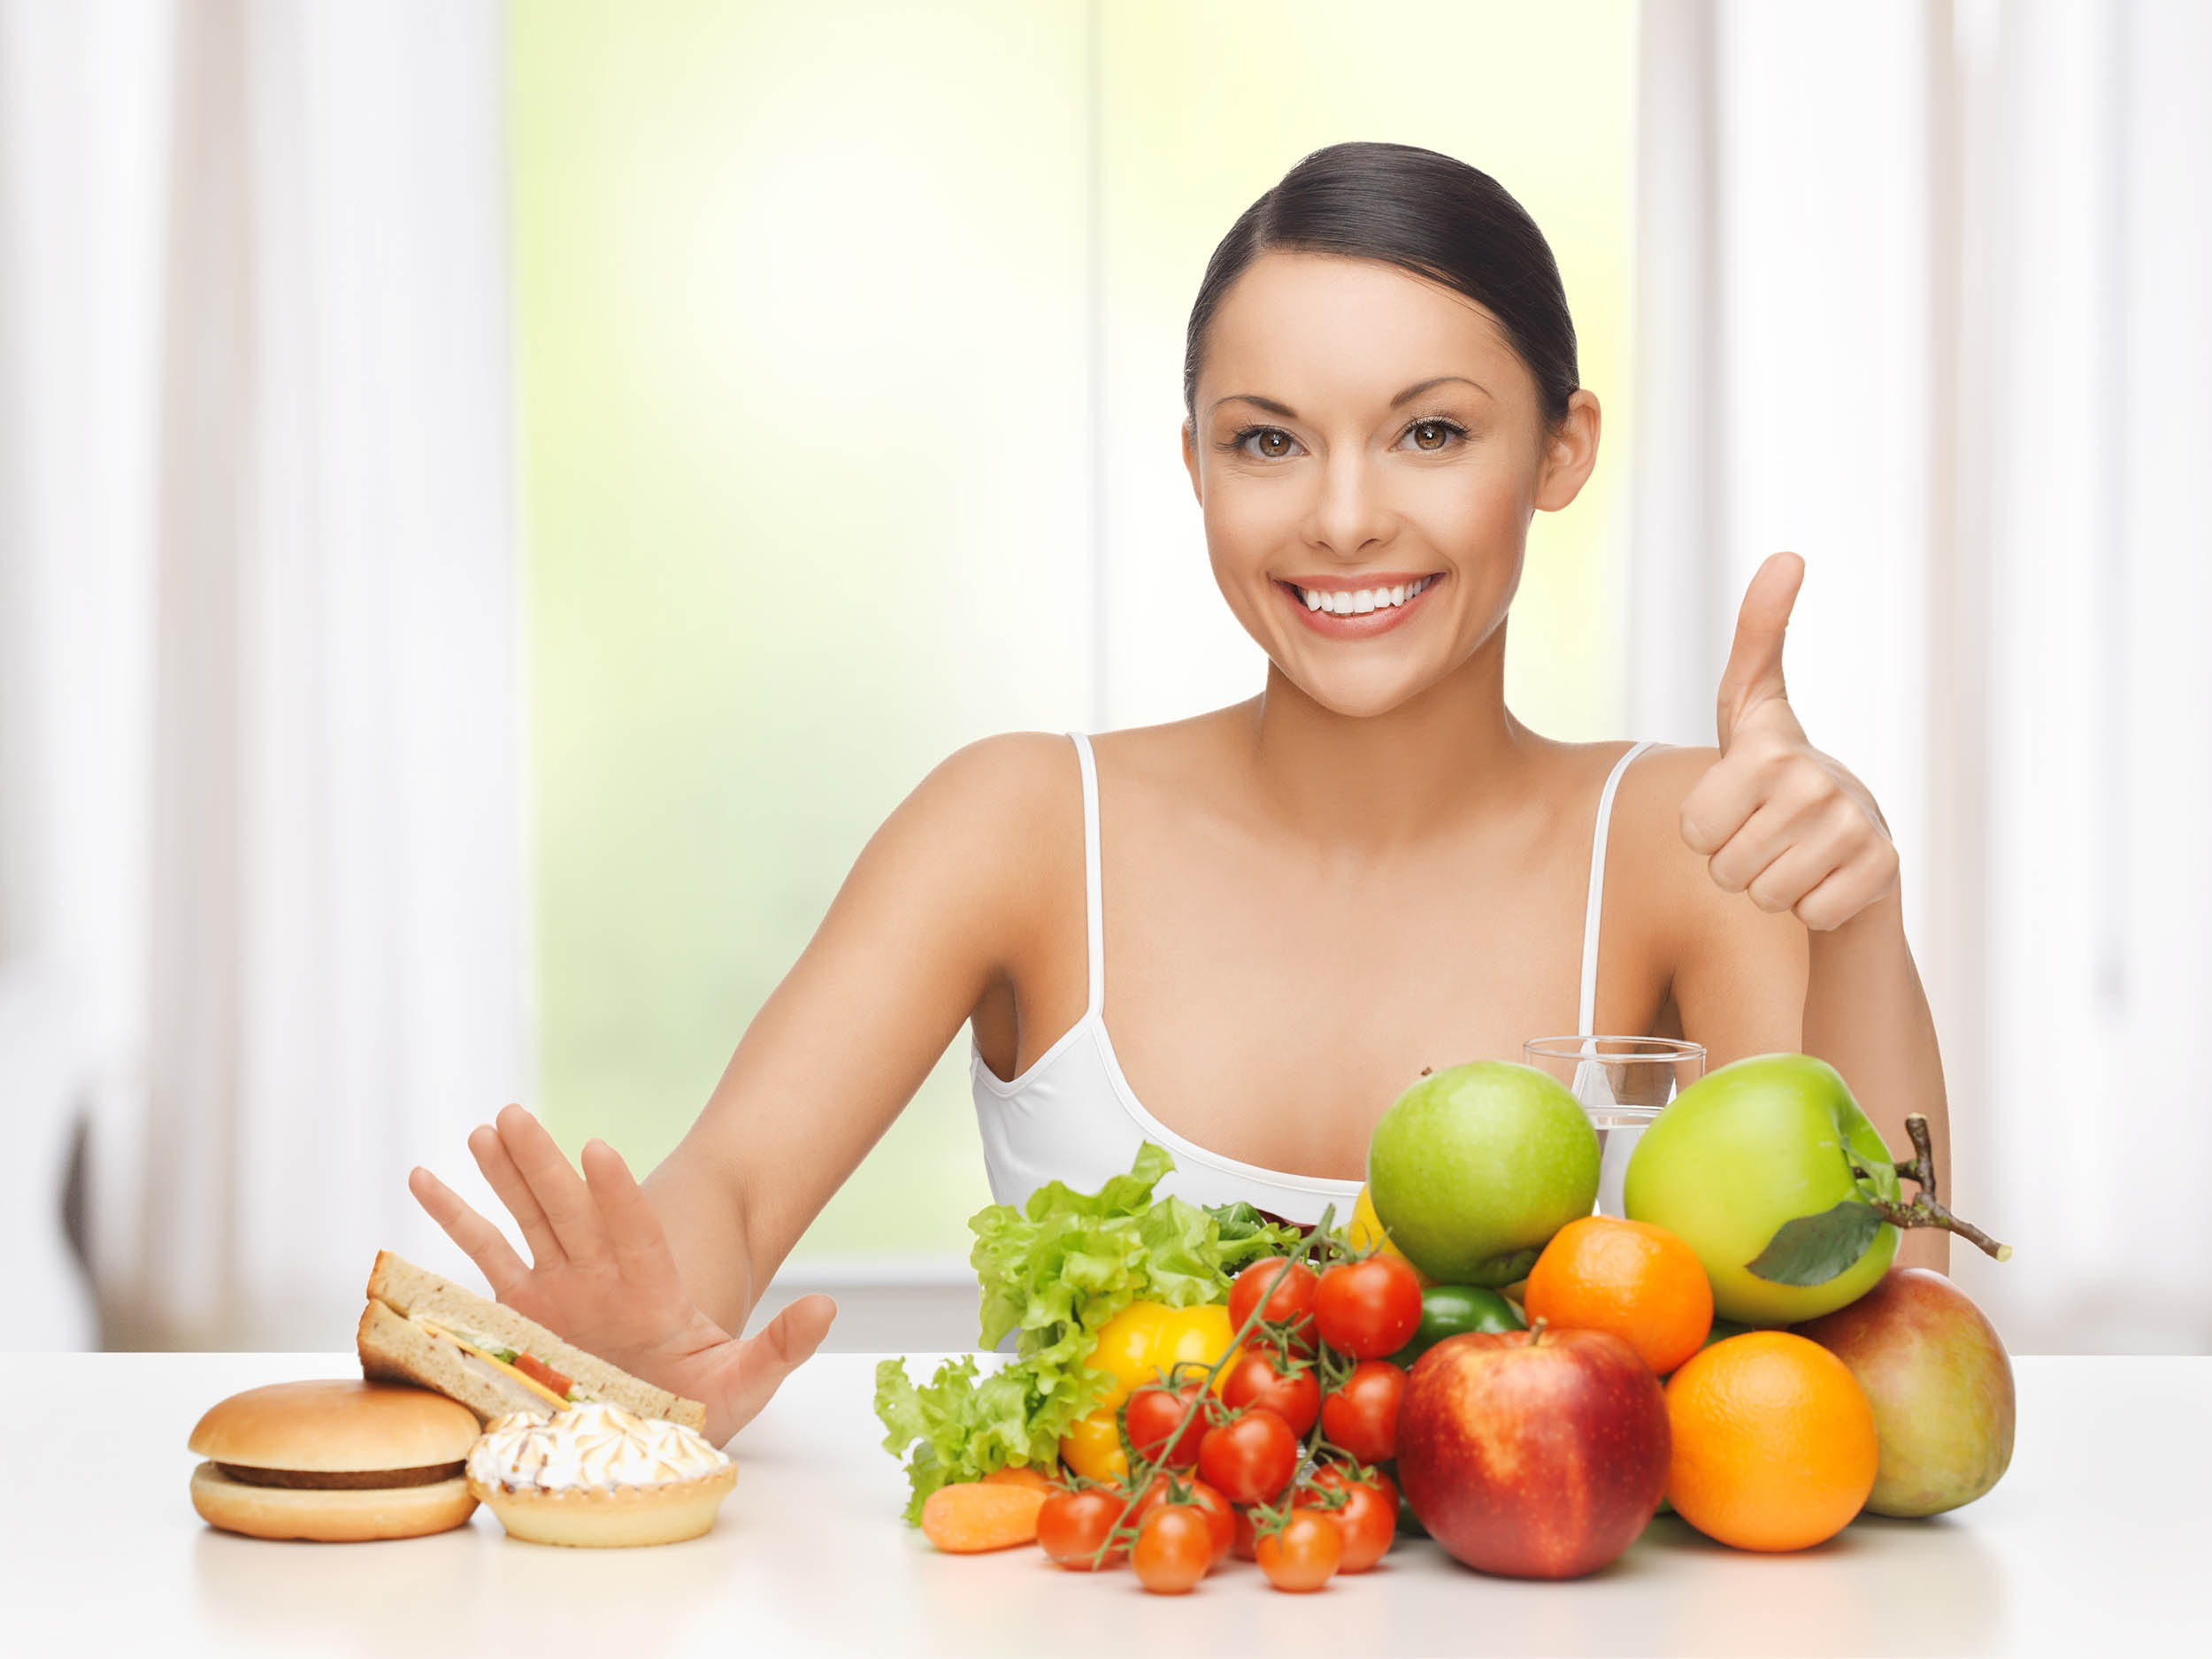 smiling woman with food